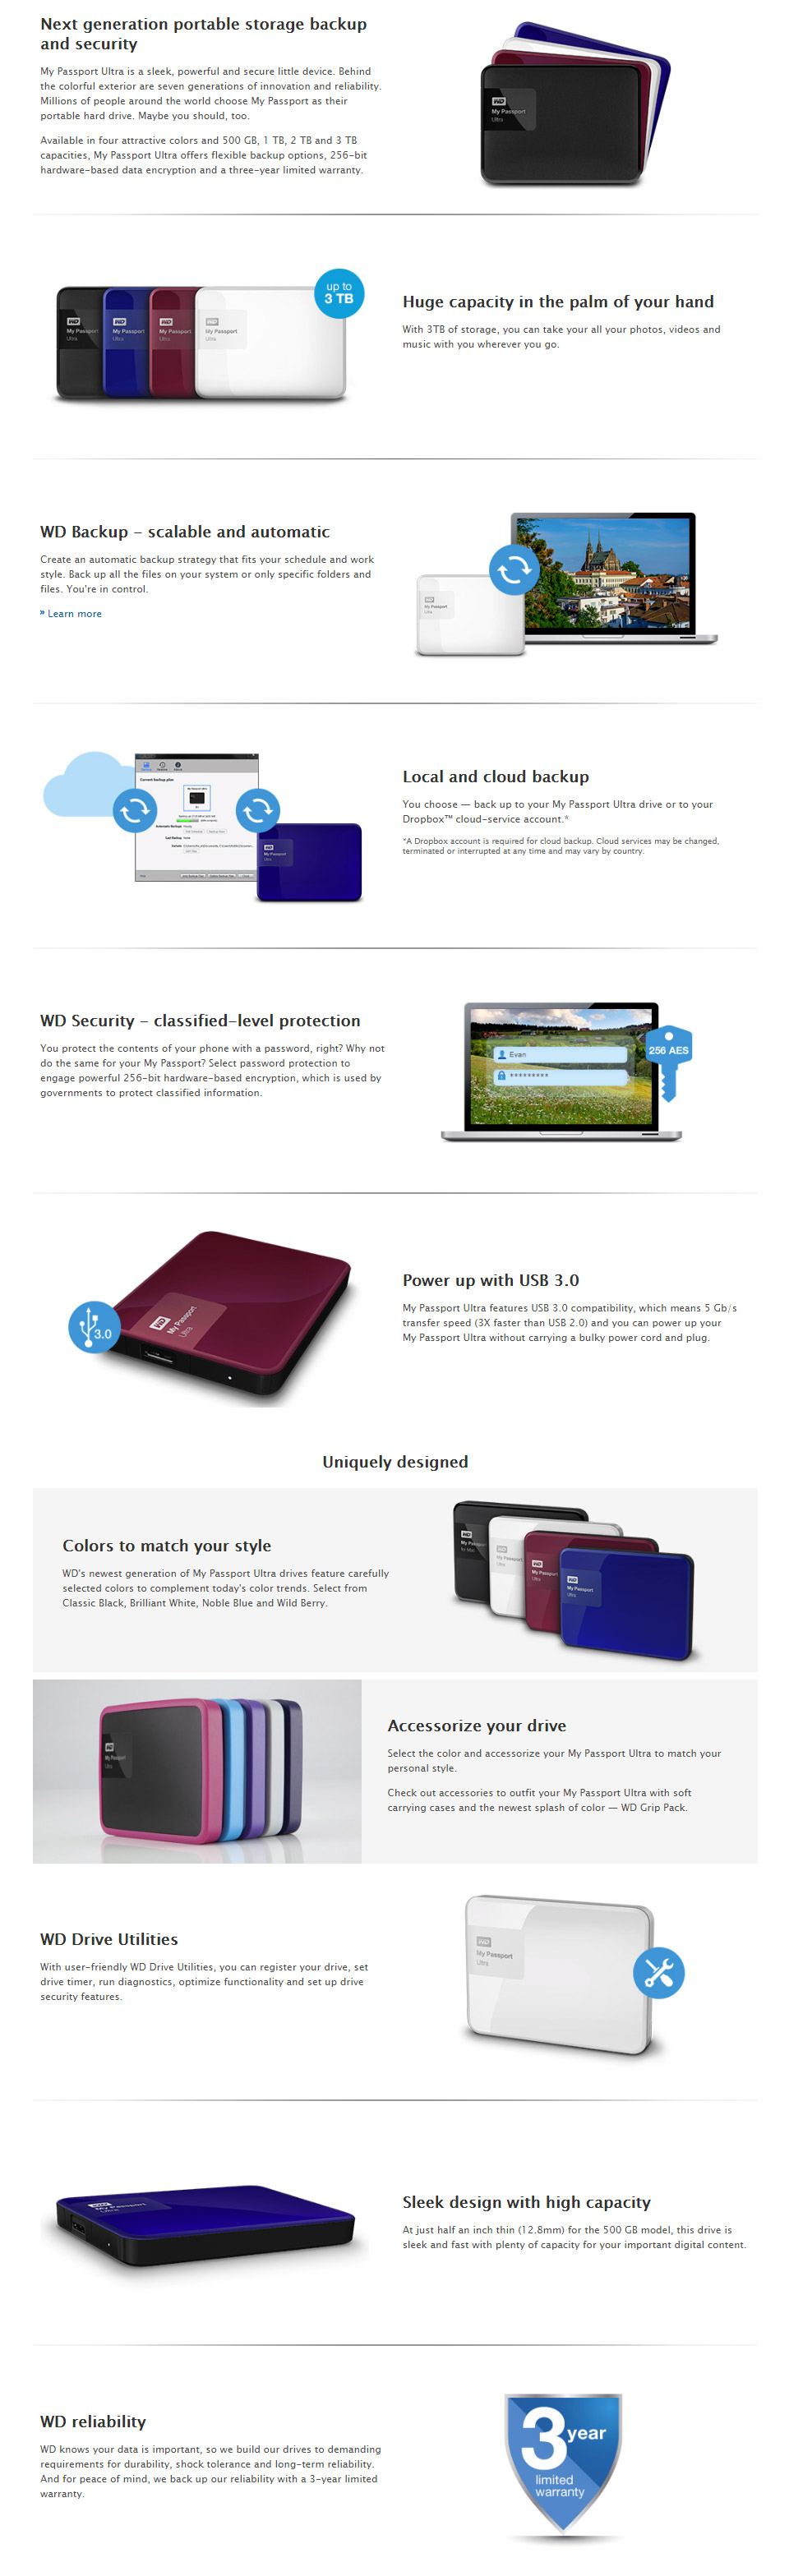 Western Digital Wd My Passport Ultra 1tb External Hdd Red Hd Than Usb 20 And You Can Power Up Your Without Carrying A Bulky Cord Plug Backed By 3 Year Warranty